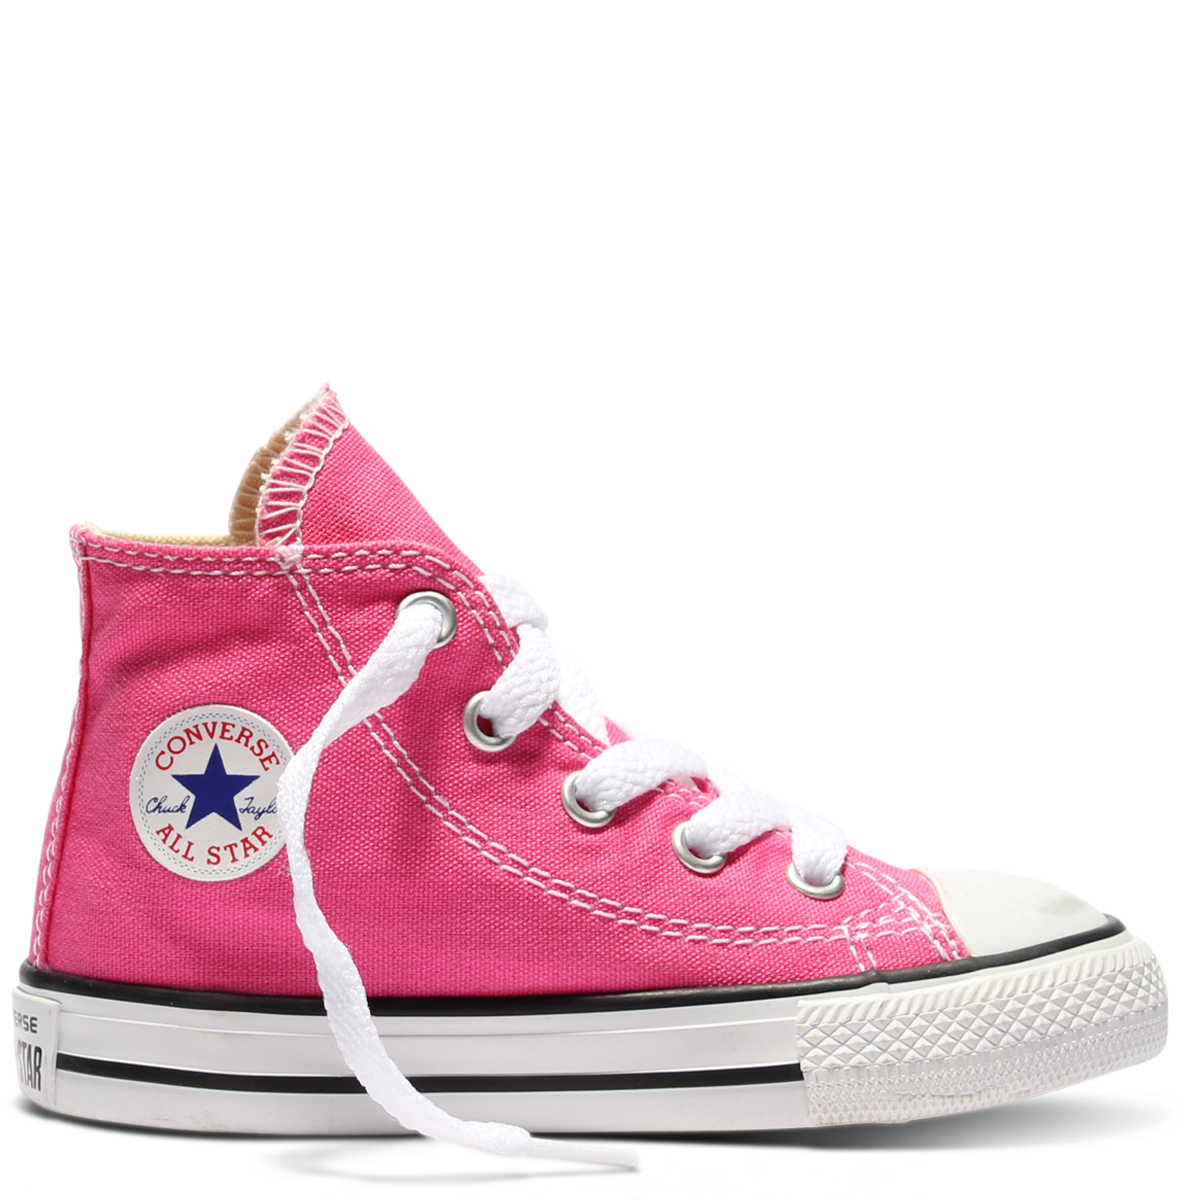 d0241603aea7 Converse Chuck Taylor All Star Fresh Colour Toddler High Top Mod Pink  Famous Rock Shop.